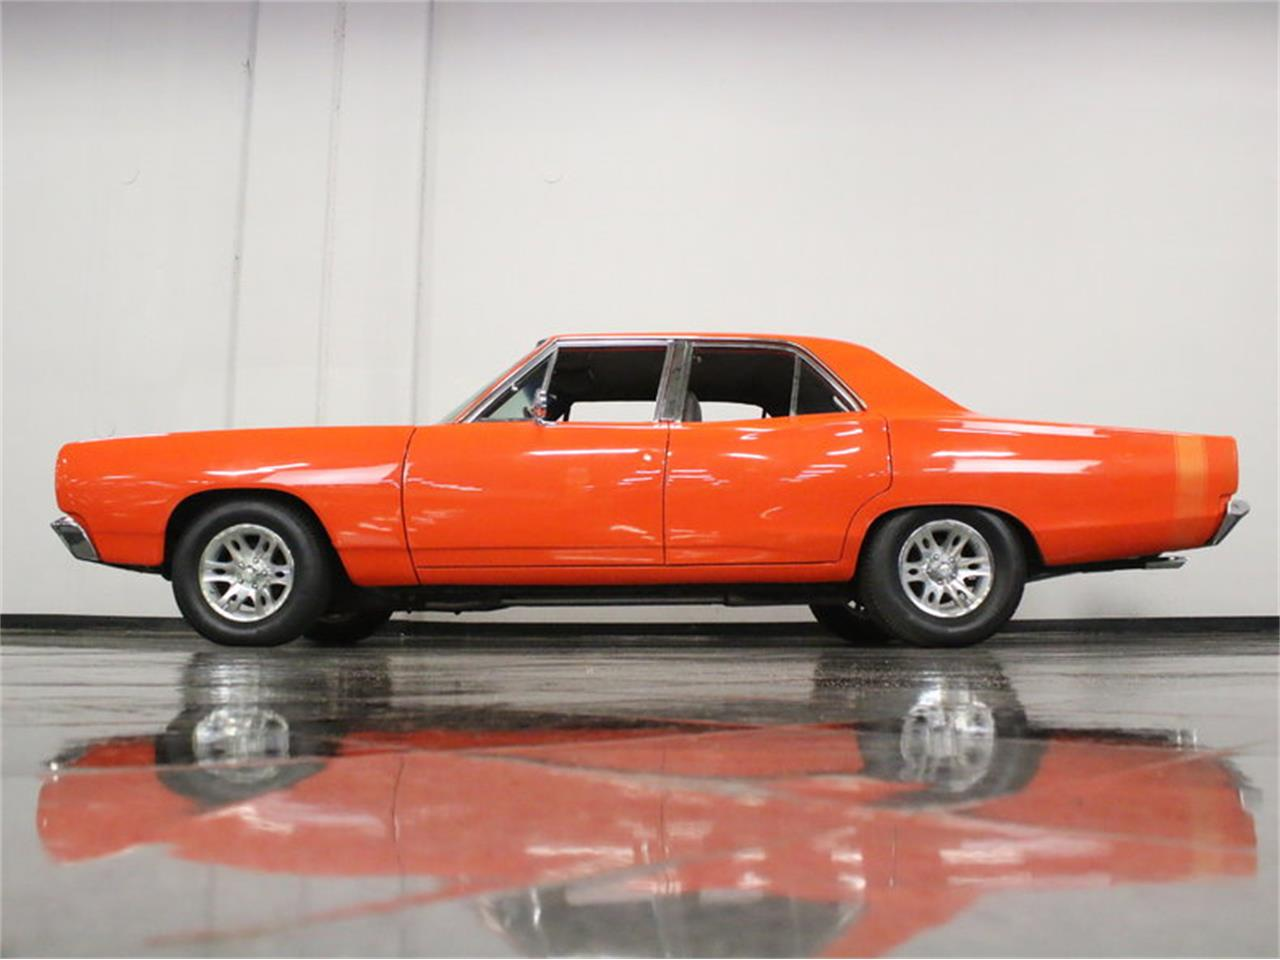 Large Picture of Classic 1969 Dodge Coronet - $12,995.00 Offered by Streetside Classics - Dallas / Fort Worth - L5NW